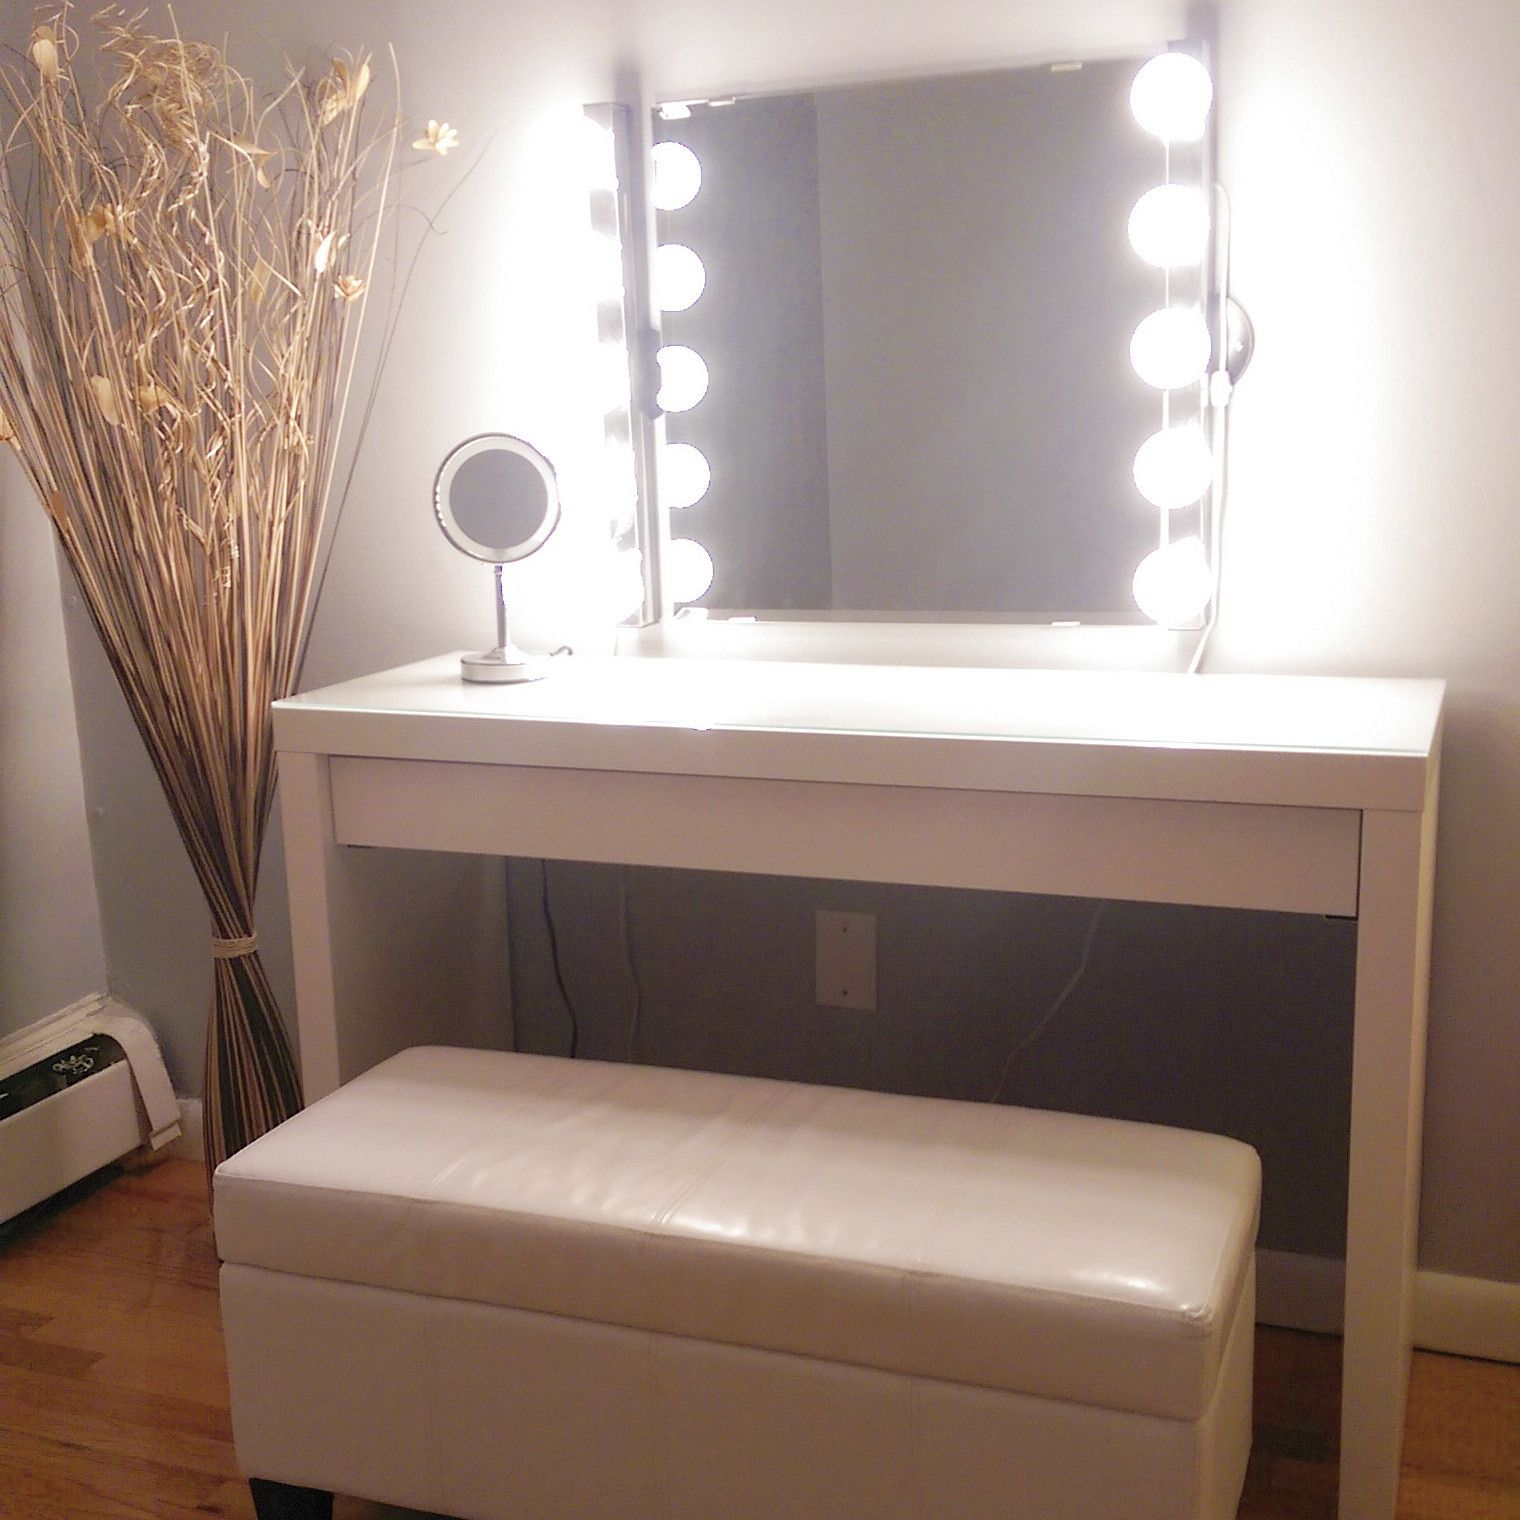 Dressing table mirrors ikea - Love The Bench Wall Mirror Is Kolja Mirror From Ikea Lights Are Musik From